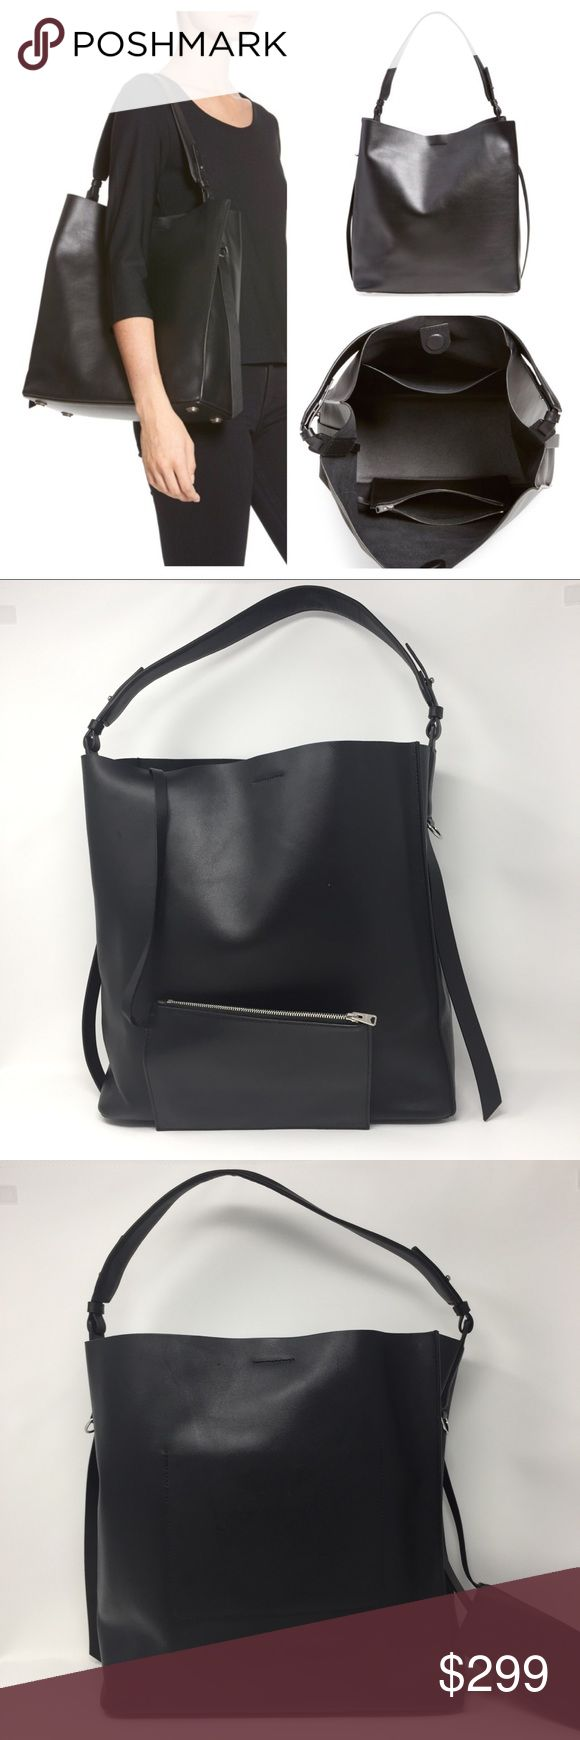 """ALLSAINTS PARADISE NORTH/SOUTH TOTE BAG AUTHENTIC AllSaints Tote. Approx 13.5""""Wx14""""Hx5.5""""D. Strap drop 8.5-9"""". Pouch: 8""""Wx5.5""""Hx.25""""D. Smooth black calfskin w/silver hardware. Minimalist style tote w/ slouchy silhouette. Tethered interior zip pouch. Magnetic tab closure, interior slip pocket, feet at base. Unlined. Very good pre-owned condition. This was used regularly & displays wear to that effect but no major flaws, rips, stains, etc. There are some marks to exterior leather (see pix)…"""